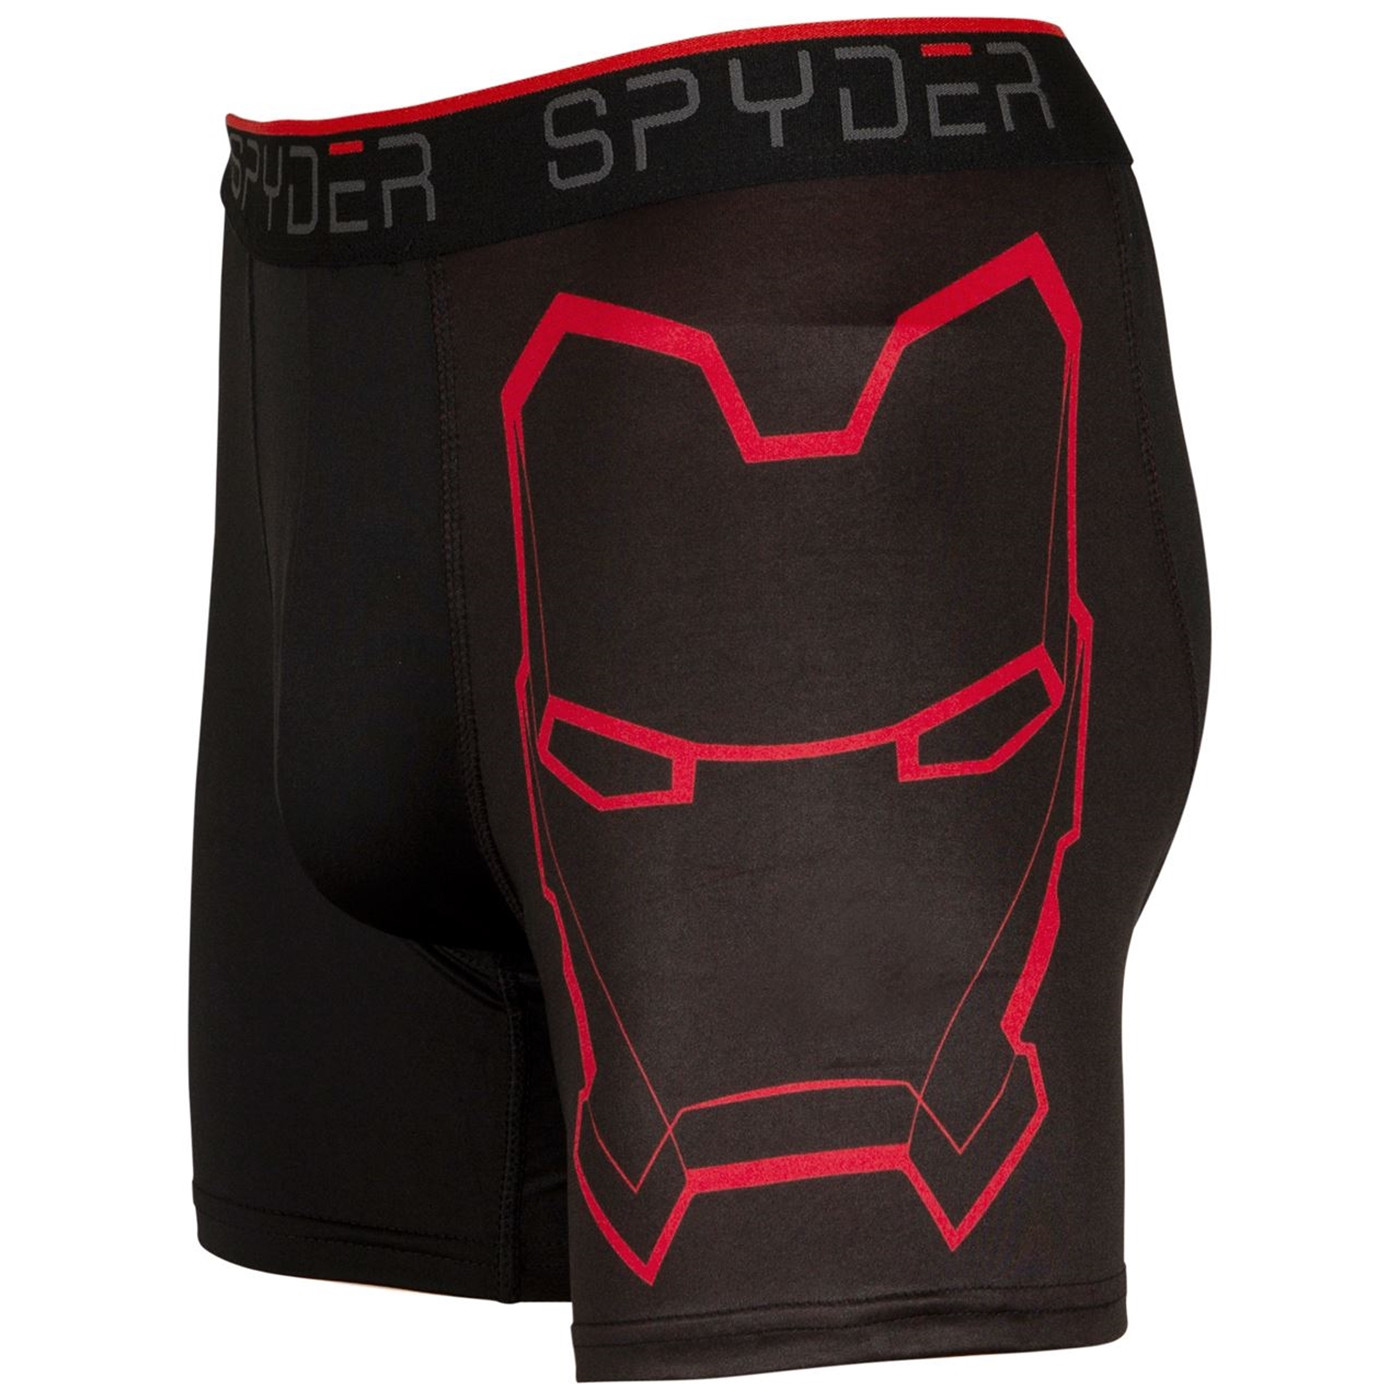 Iron Man Spyder Performance Sports Boxer Briefs 3-Pair Pack